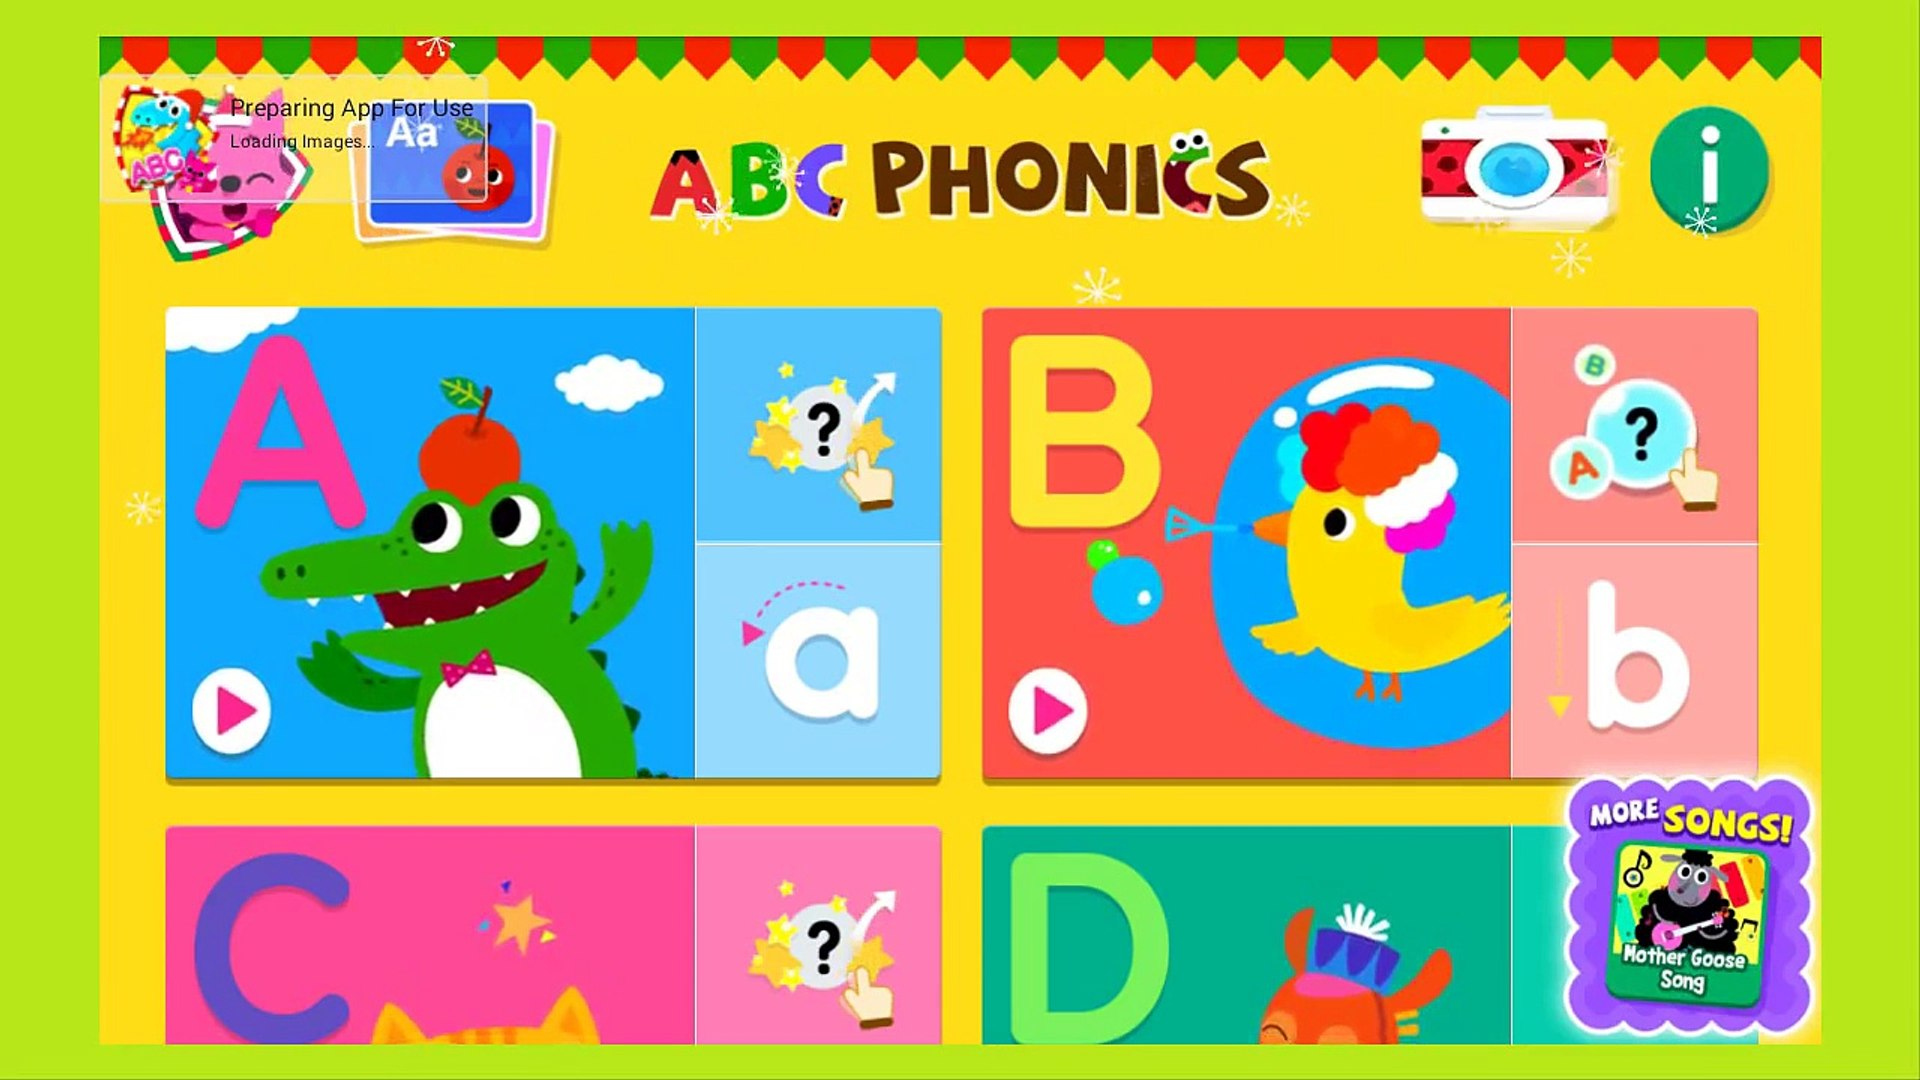 ABC Phonics  SONG   ABC Songs for Children   Kids Learn Alphabet   Education  video for Kids